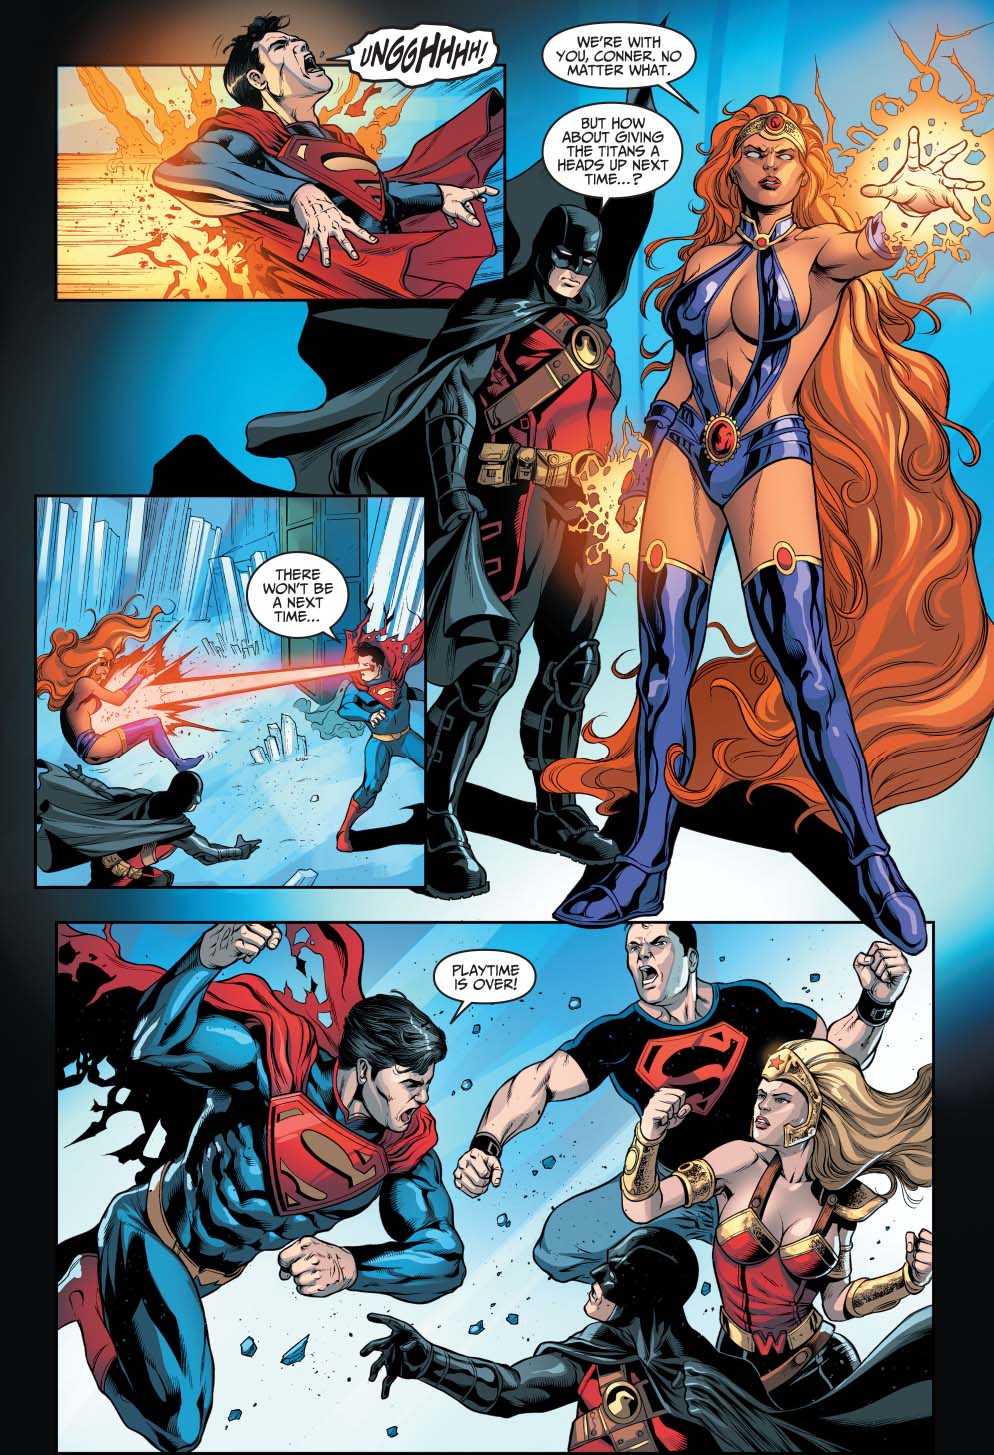 Superman Vs The Teen Titans Injustice Gods Among Us -4162